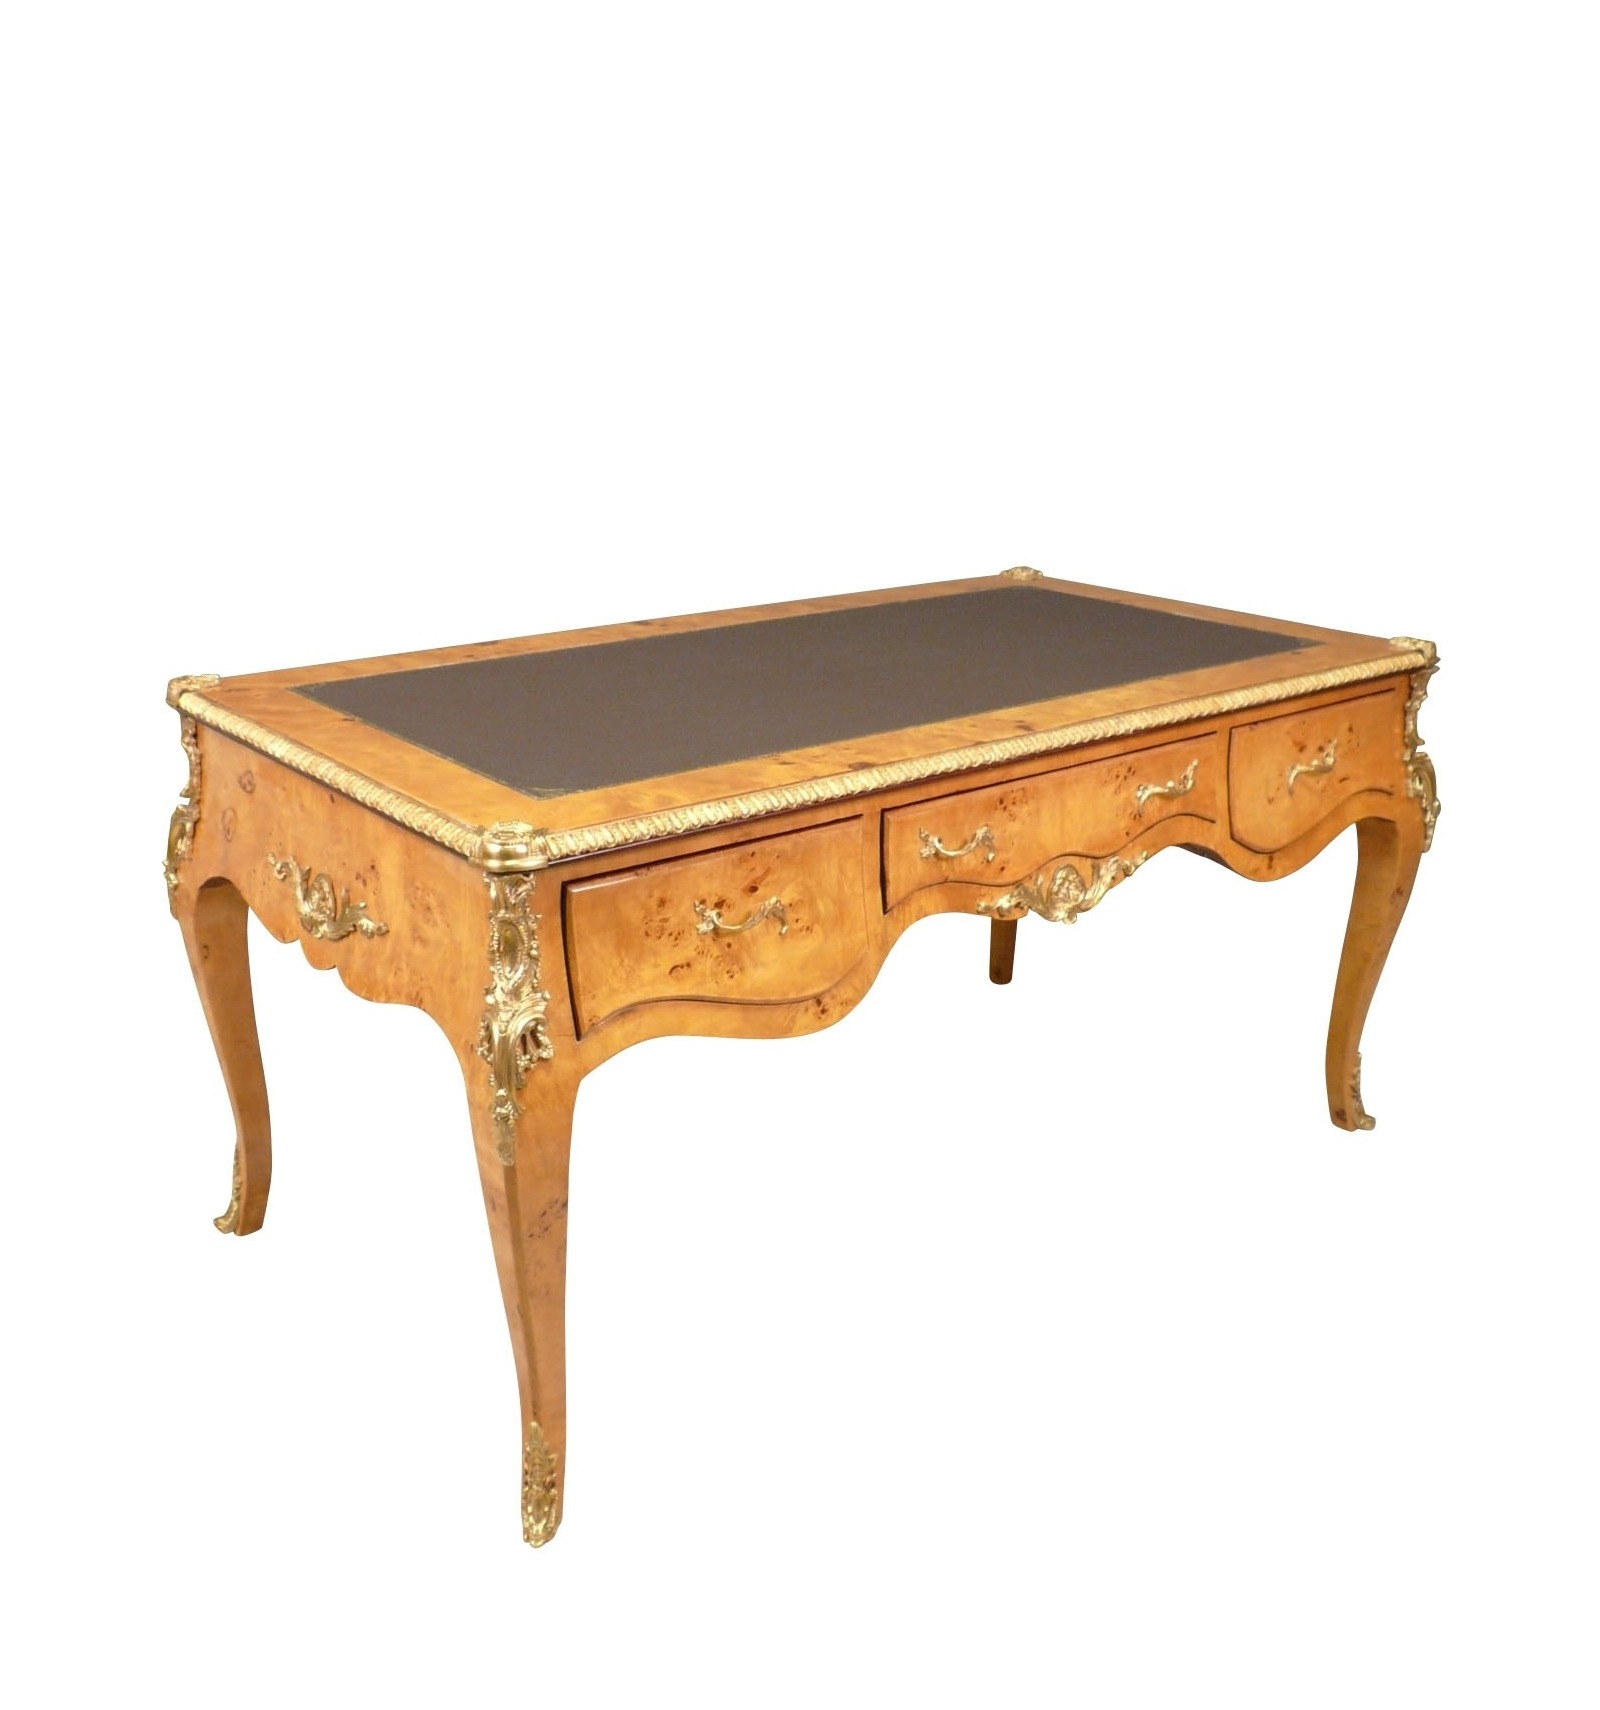 Grand bureau louis xv en loupe d 39 orme meubles de style for Meuble bureau louis xv